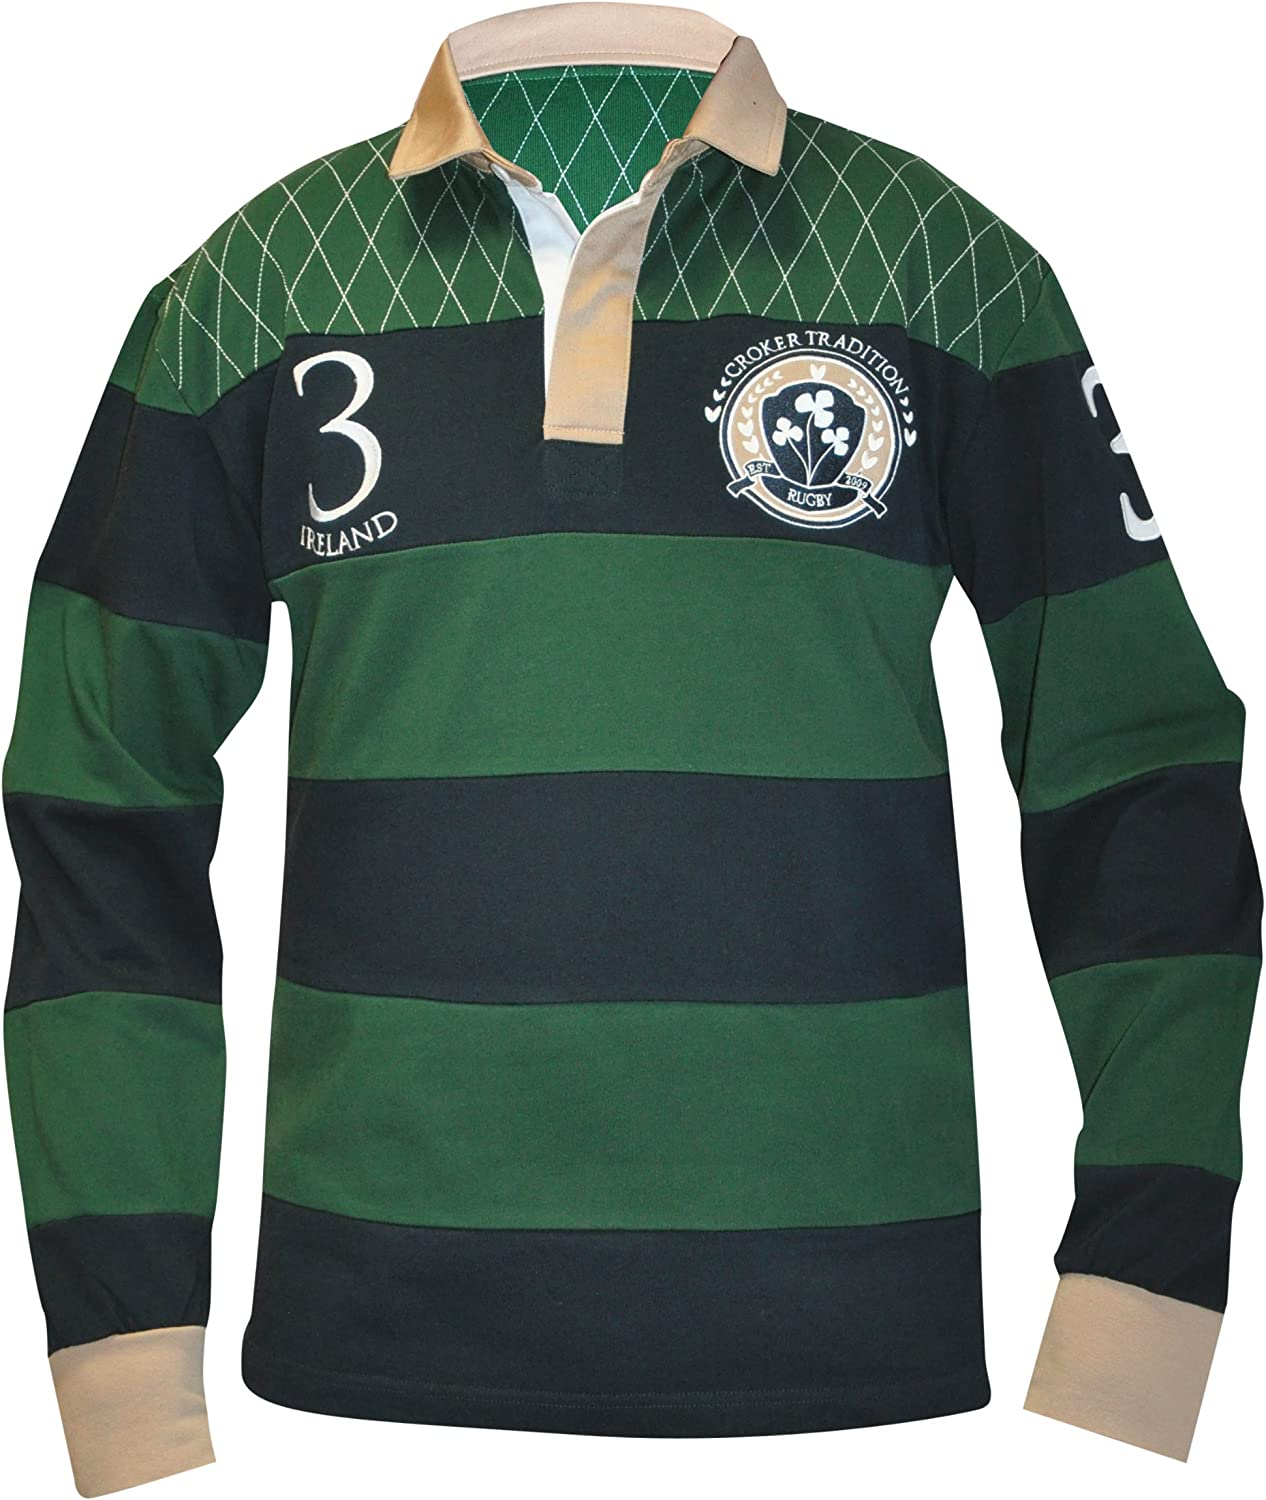 Croker Traditional Green and Navy Striped Rugby Jersey  Cotton Long Sleeve Polo Shirt